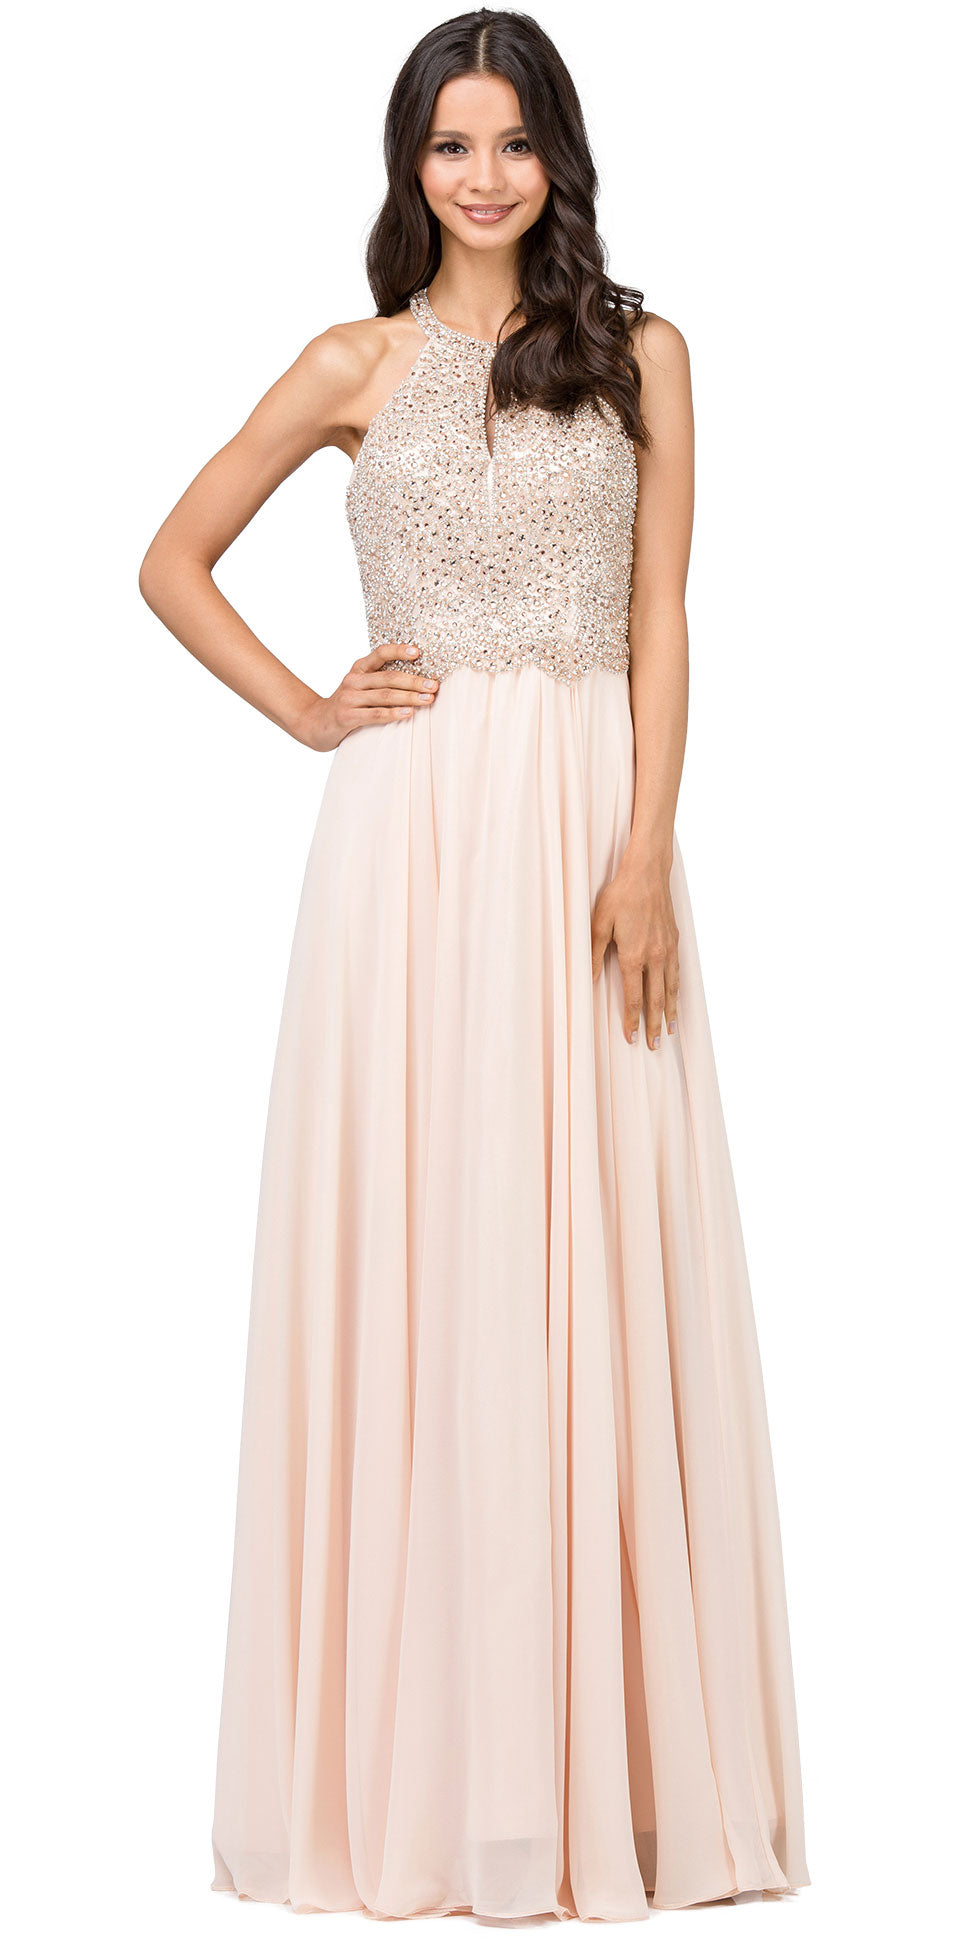 Image of Embellished Bodice & Back Straps Long Prom Dress in Champaign